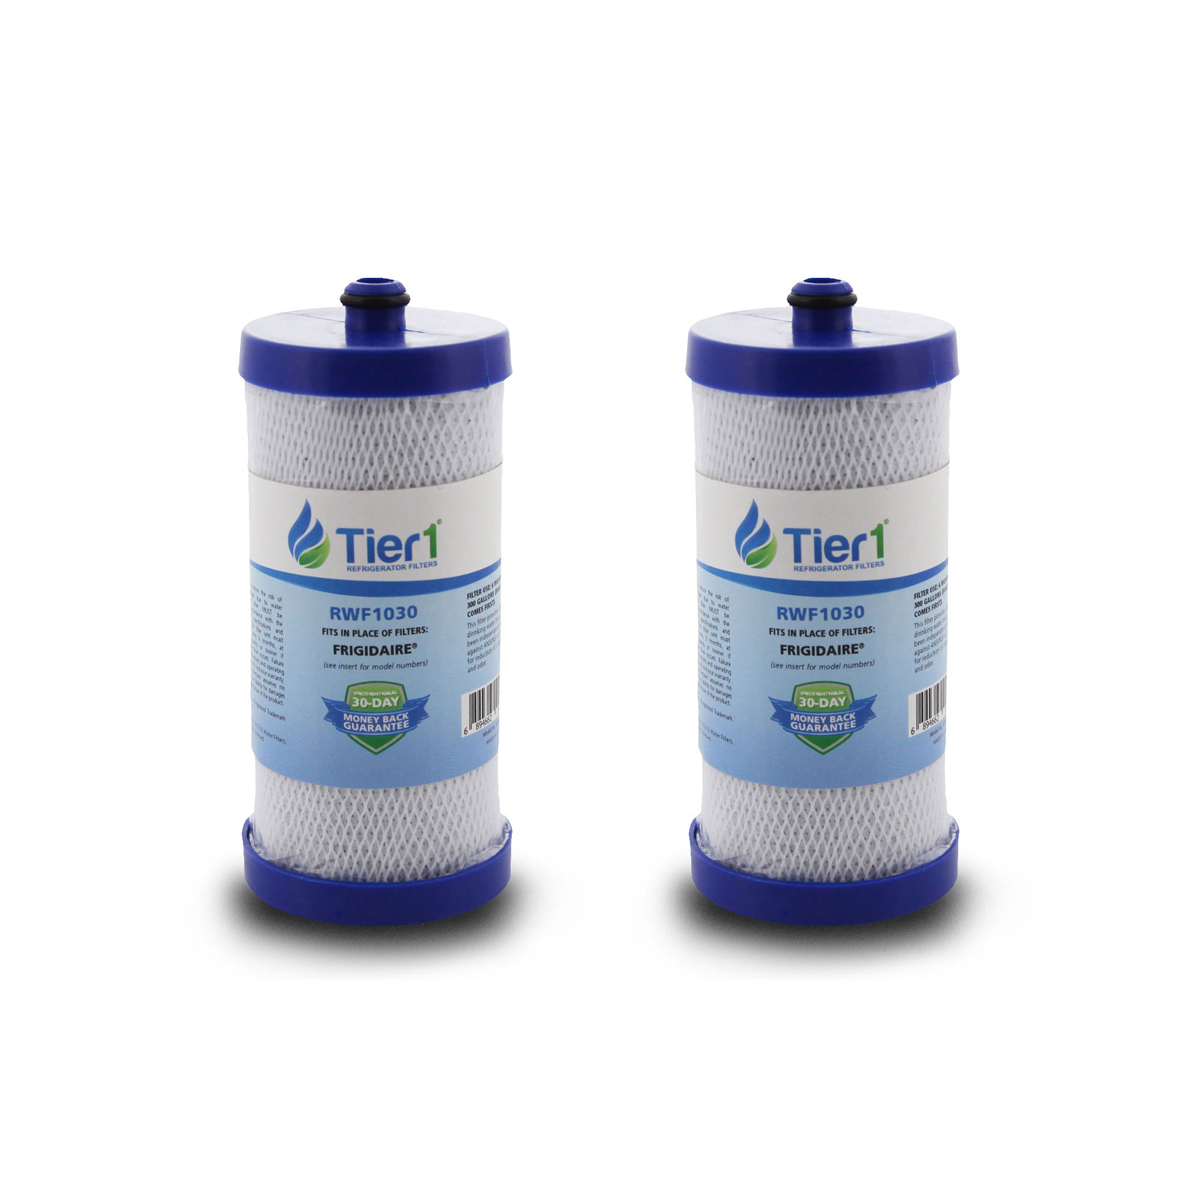 WFCB/WF1CB Frigidaire Comparable Water Filter Replacement By Tier1 (2 Pack) TIER1_RWF1030_2_PACK